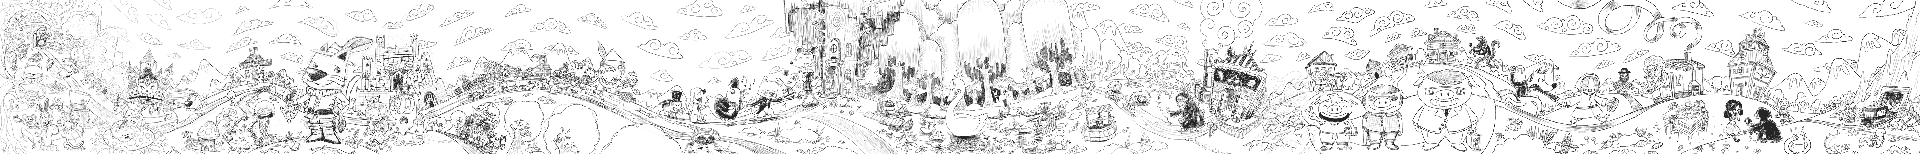 Panoramic digital sketch drawing of Wondertales form Neverland